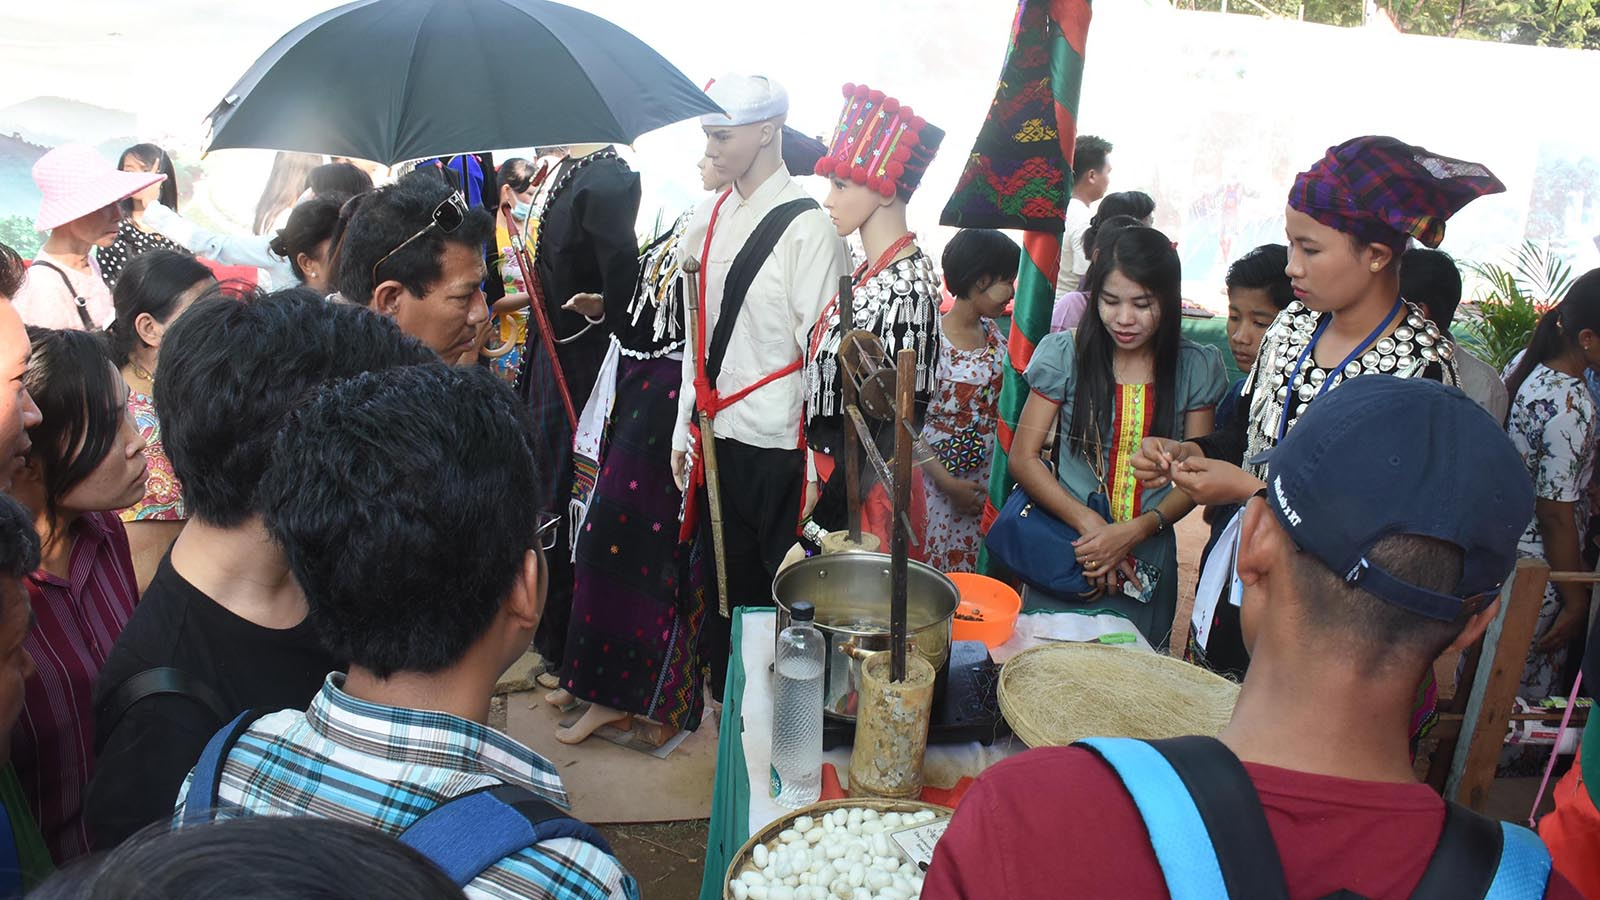 Visitors take a look around the Kachin ethnic culture exhibit at Myanmar Ethnics Culture Fest in Kyaikkasan Sports Ground in Yangon. photo: zaw min latt